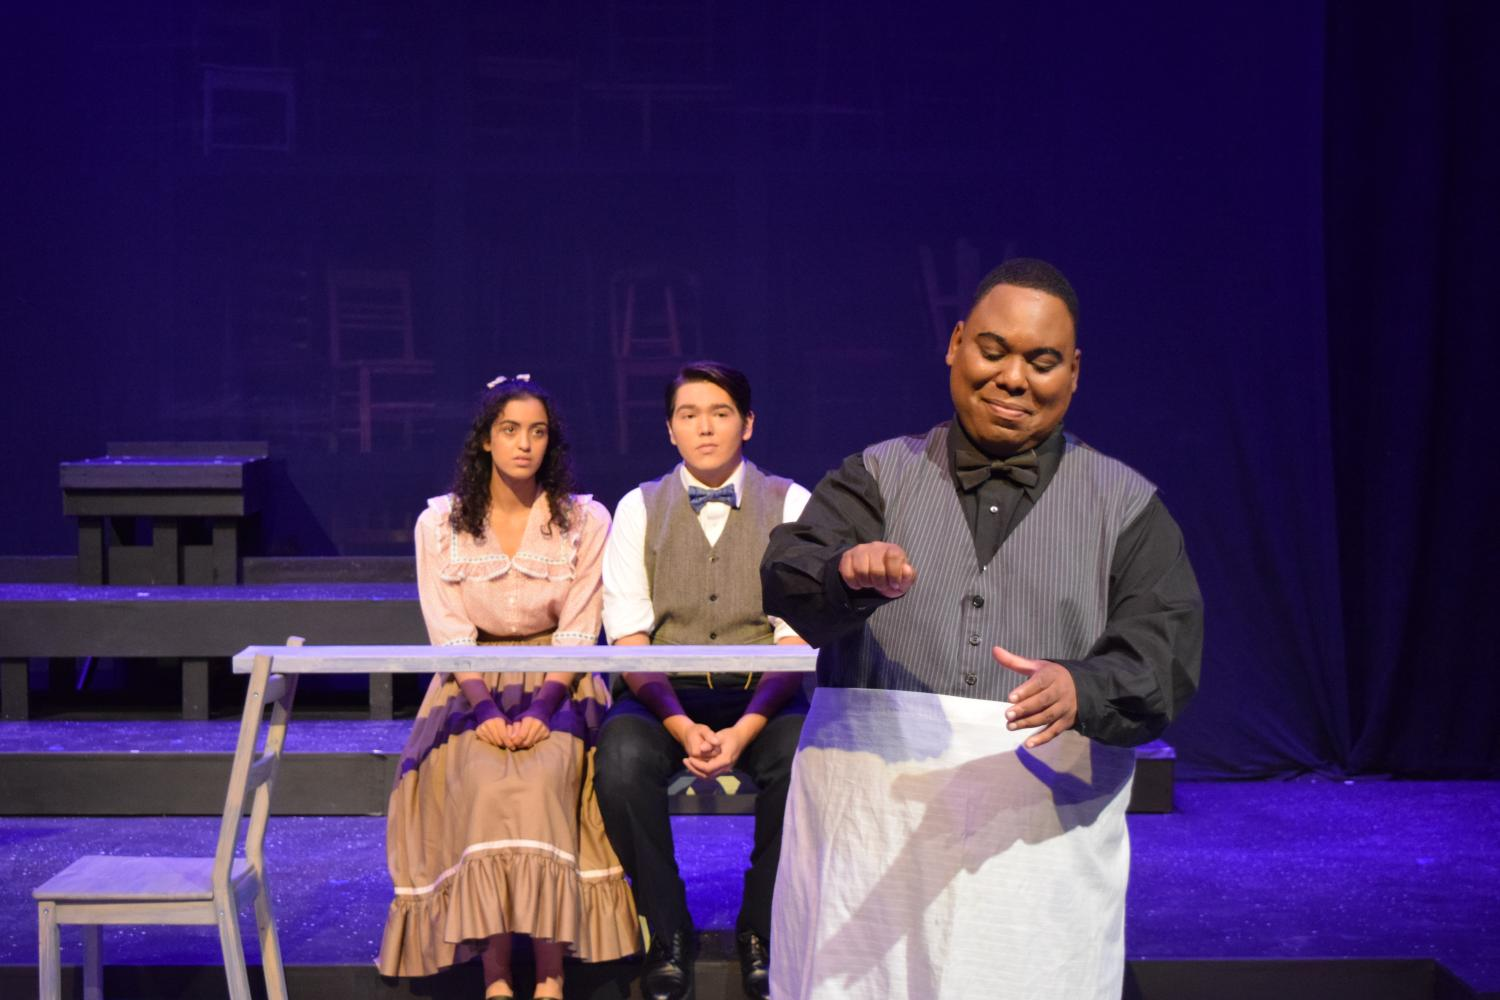 'Store Manager' (Coleman Daniel) scoops ice cream for young lovers, Emily (Sara Alnassiri) and George (David Johnson) in a performance of 'Our Town' on Oct. 13.